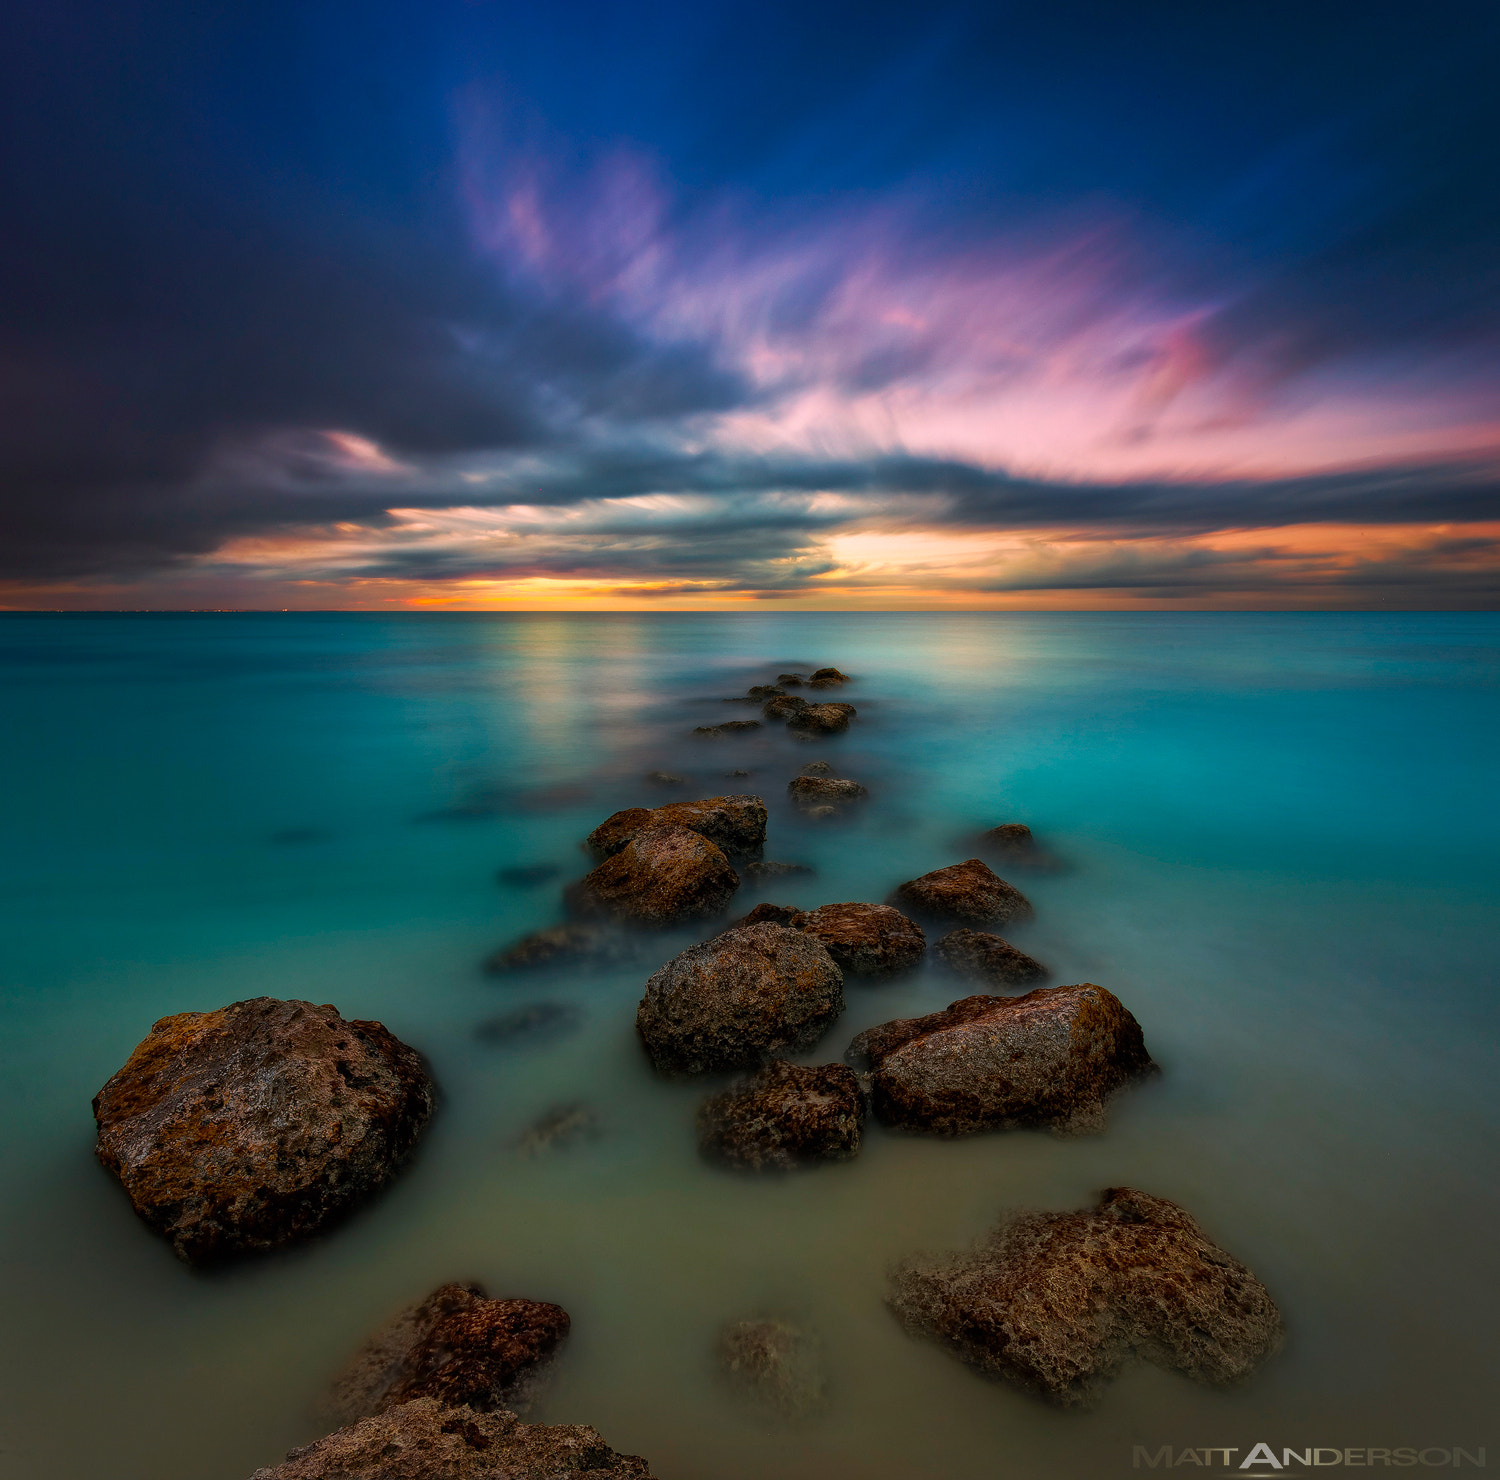 Photograph L'Heure Bleue - The Blue Hour by Matt Anderson on 500px